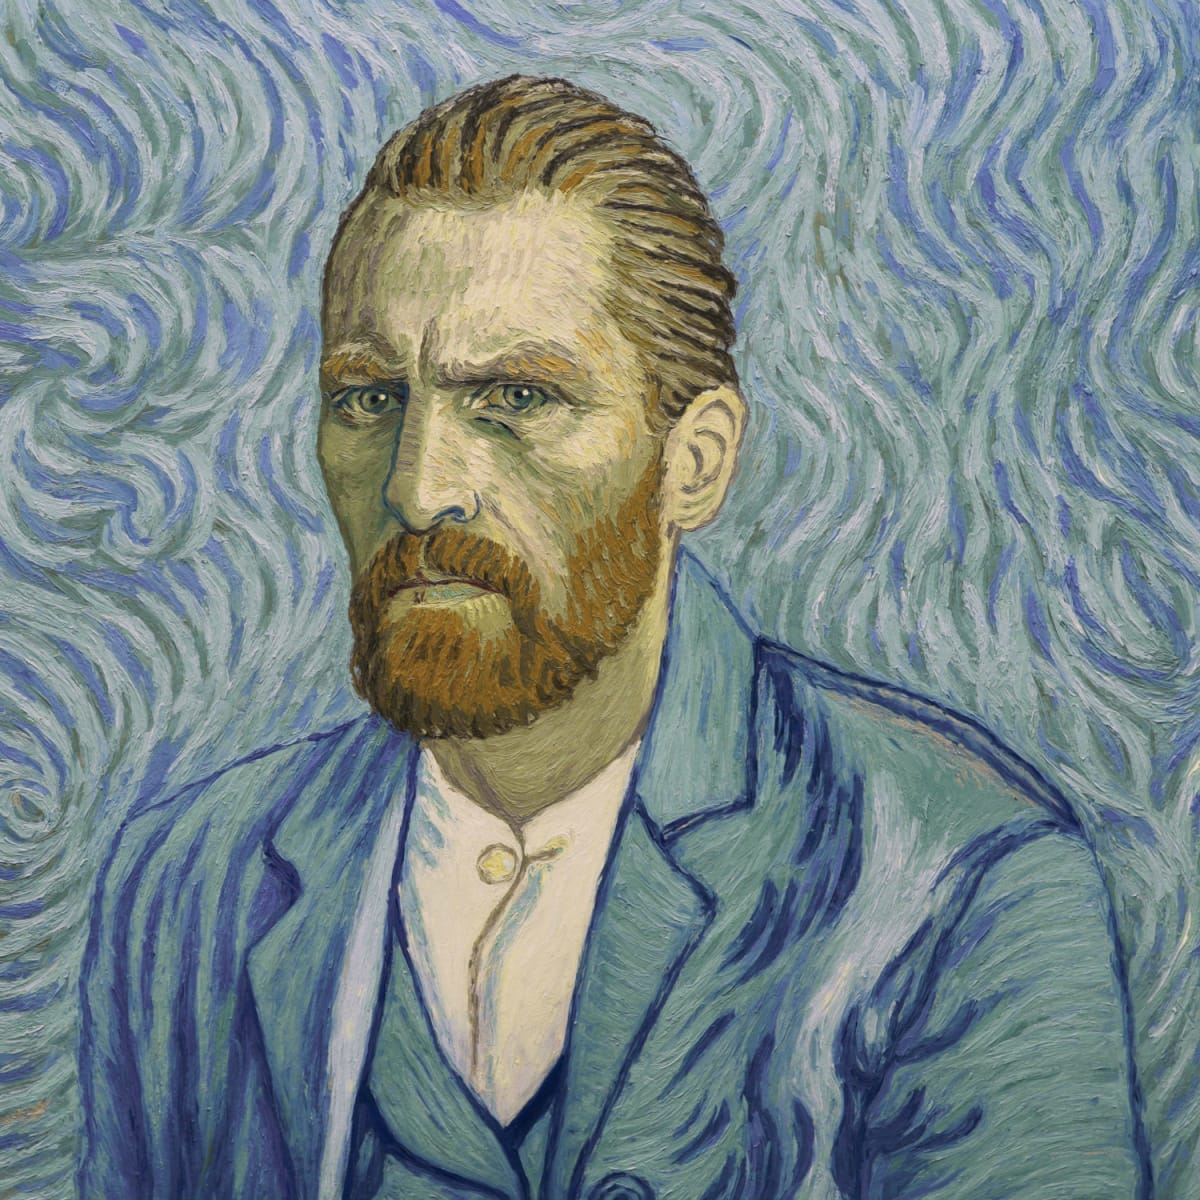 Magnolia at the Modern: Loving Vincent